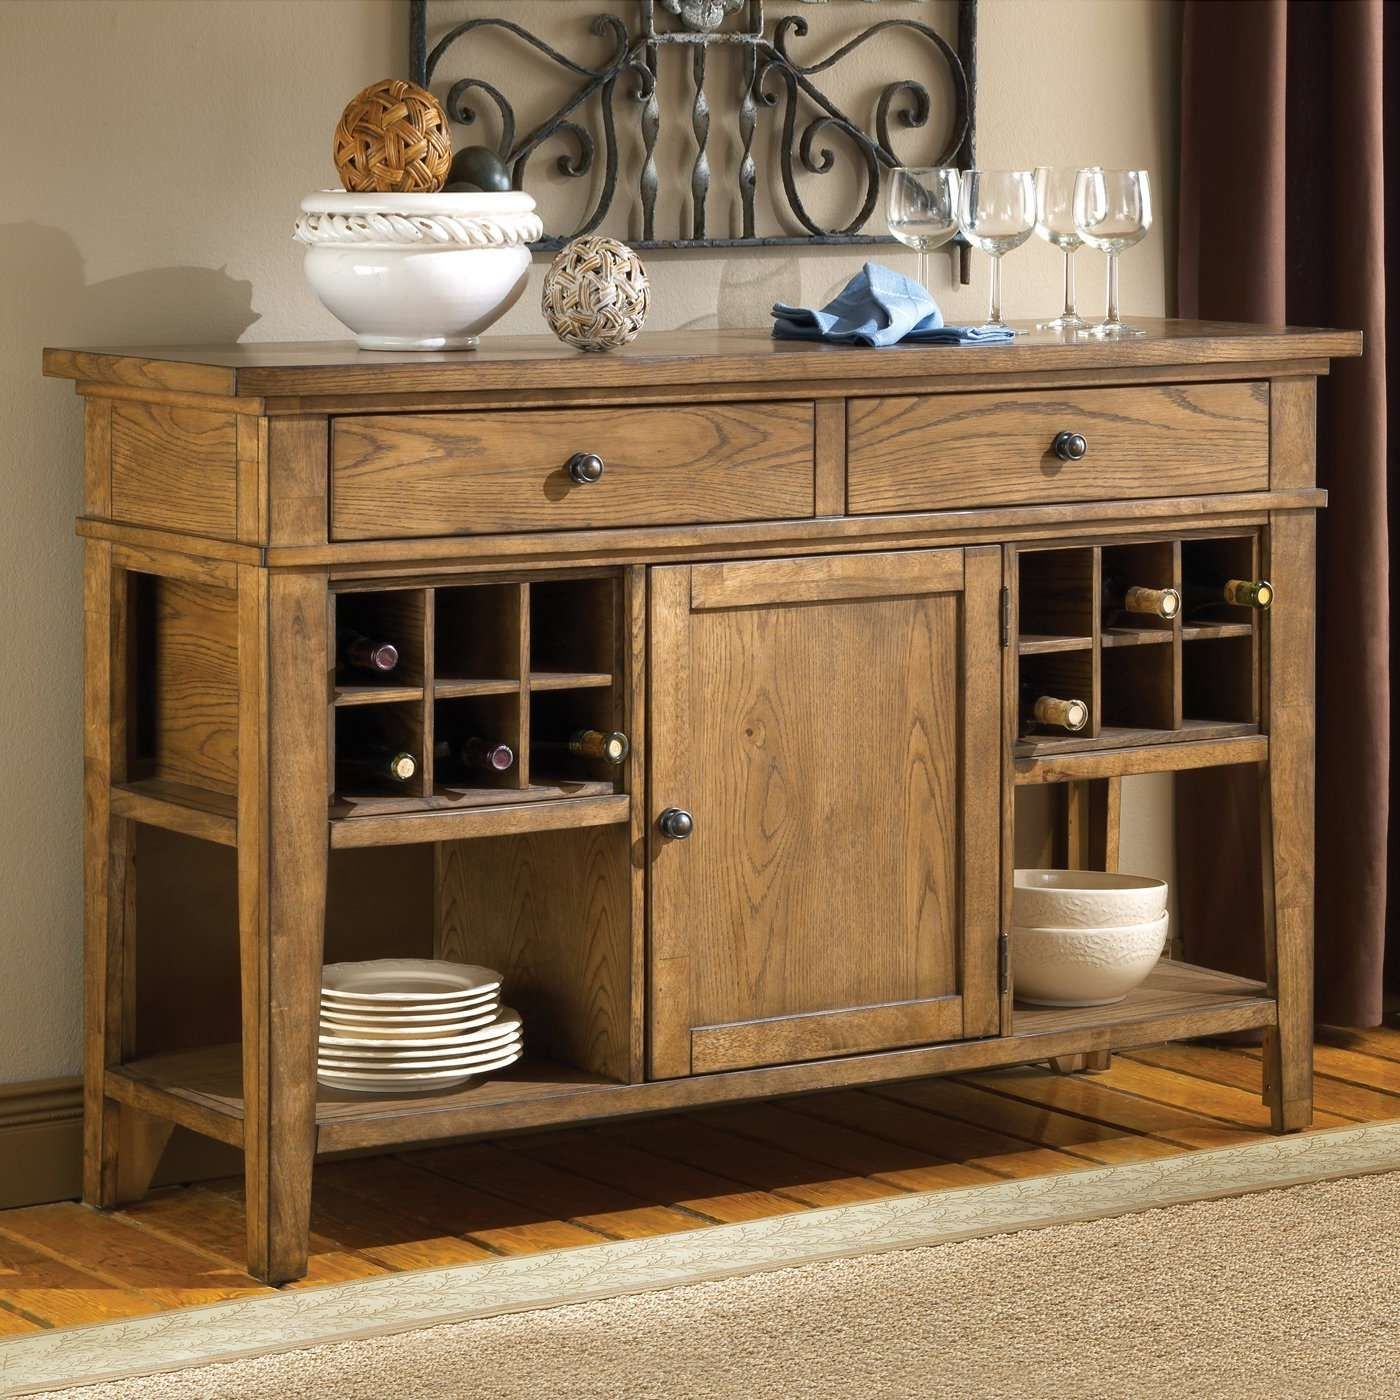 Traditional Dining Room Sideboards And Buffets : Rustic Dining Regarding Rustic Sideboards And Buffets (View 3 of 20)